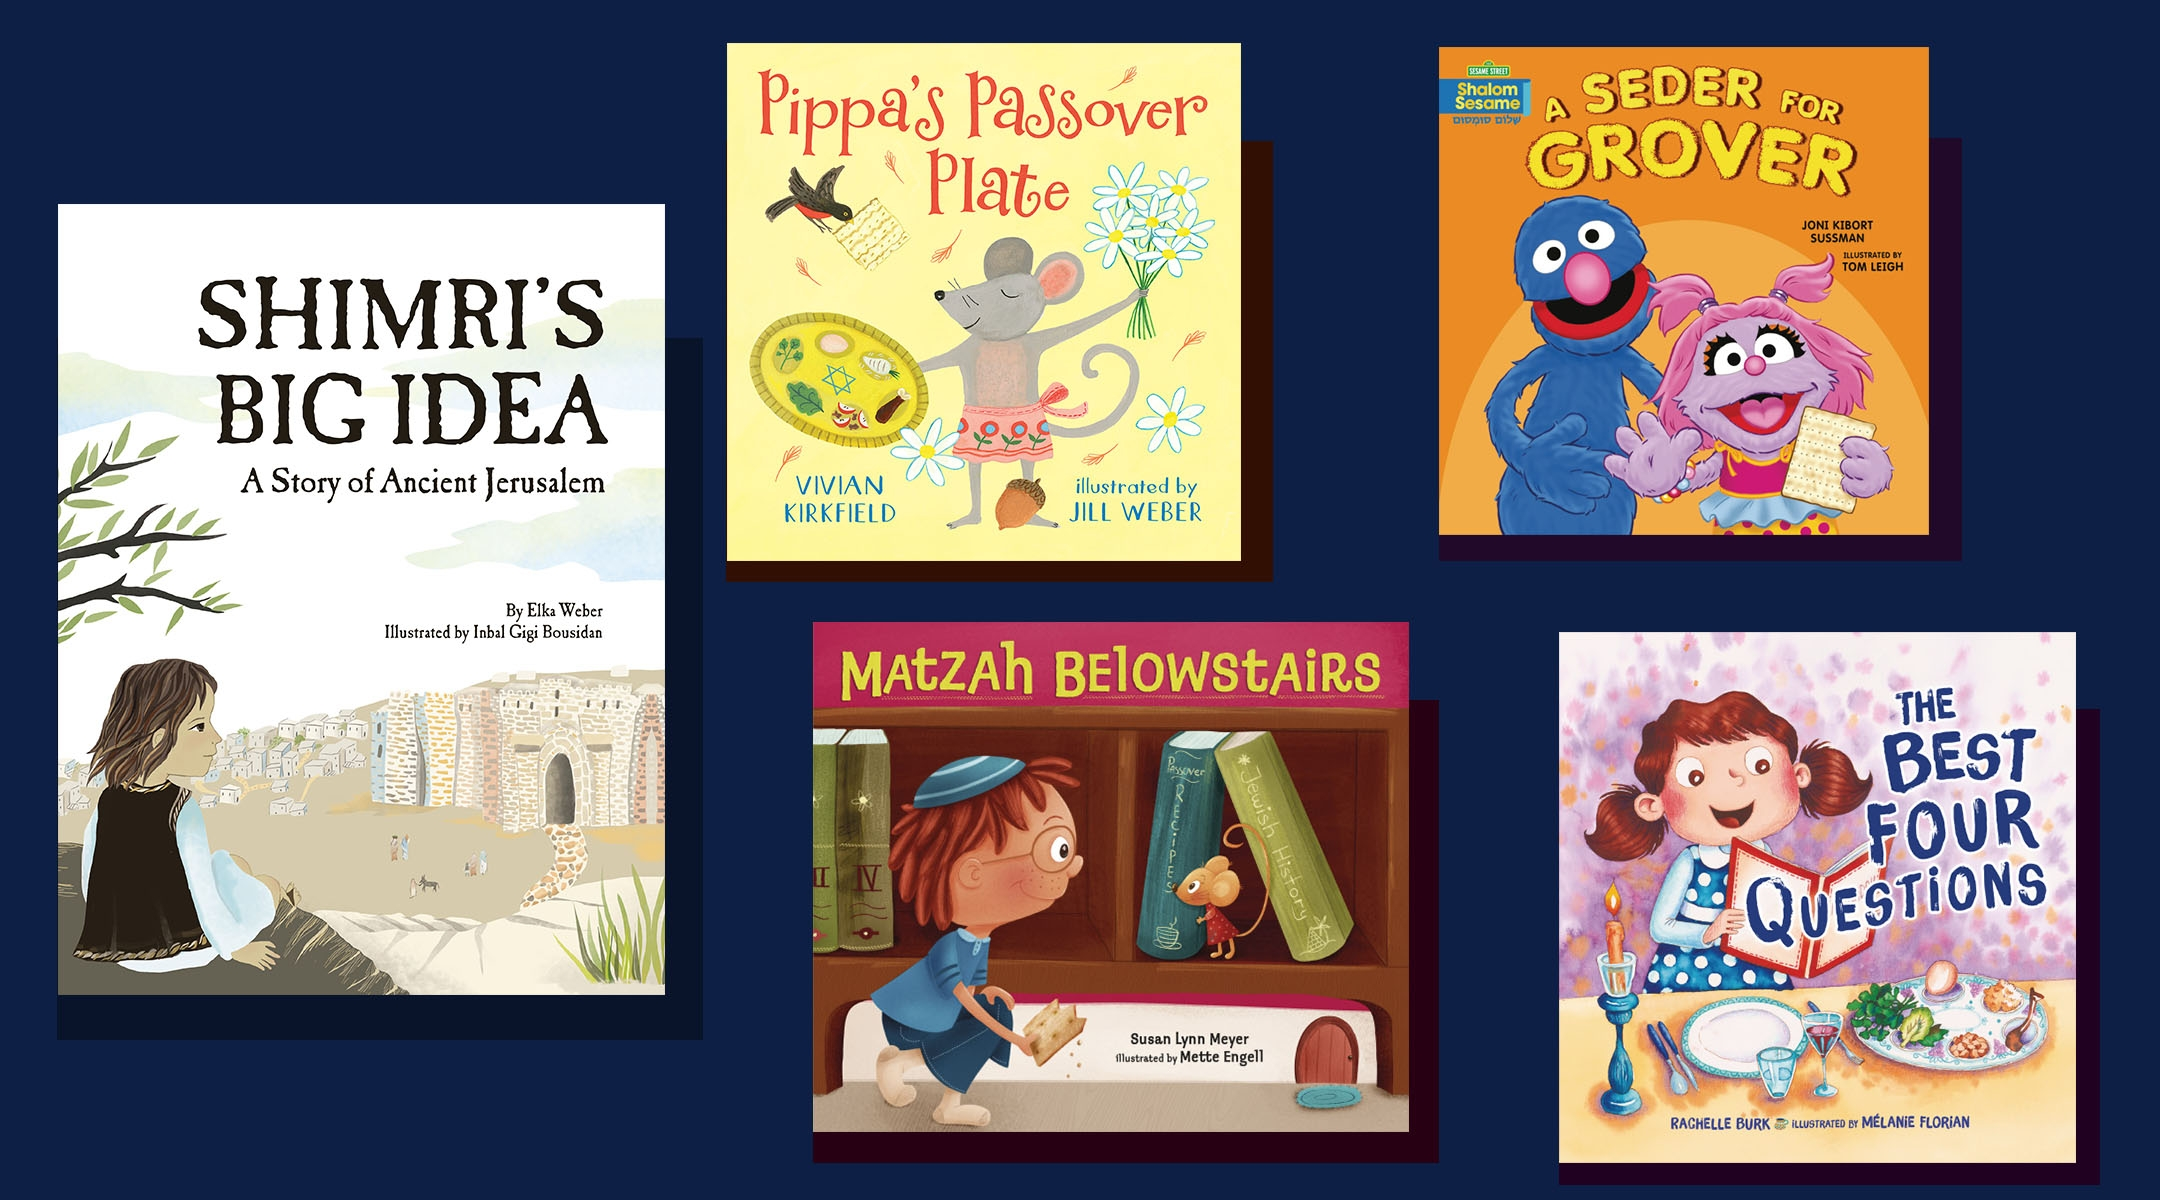 A 'Sesame Street' seder and 4 other new children's books for